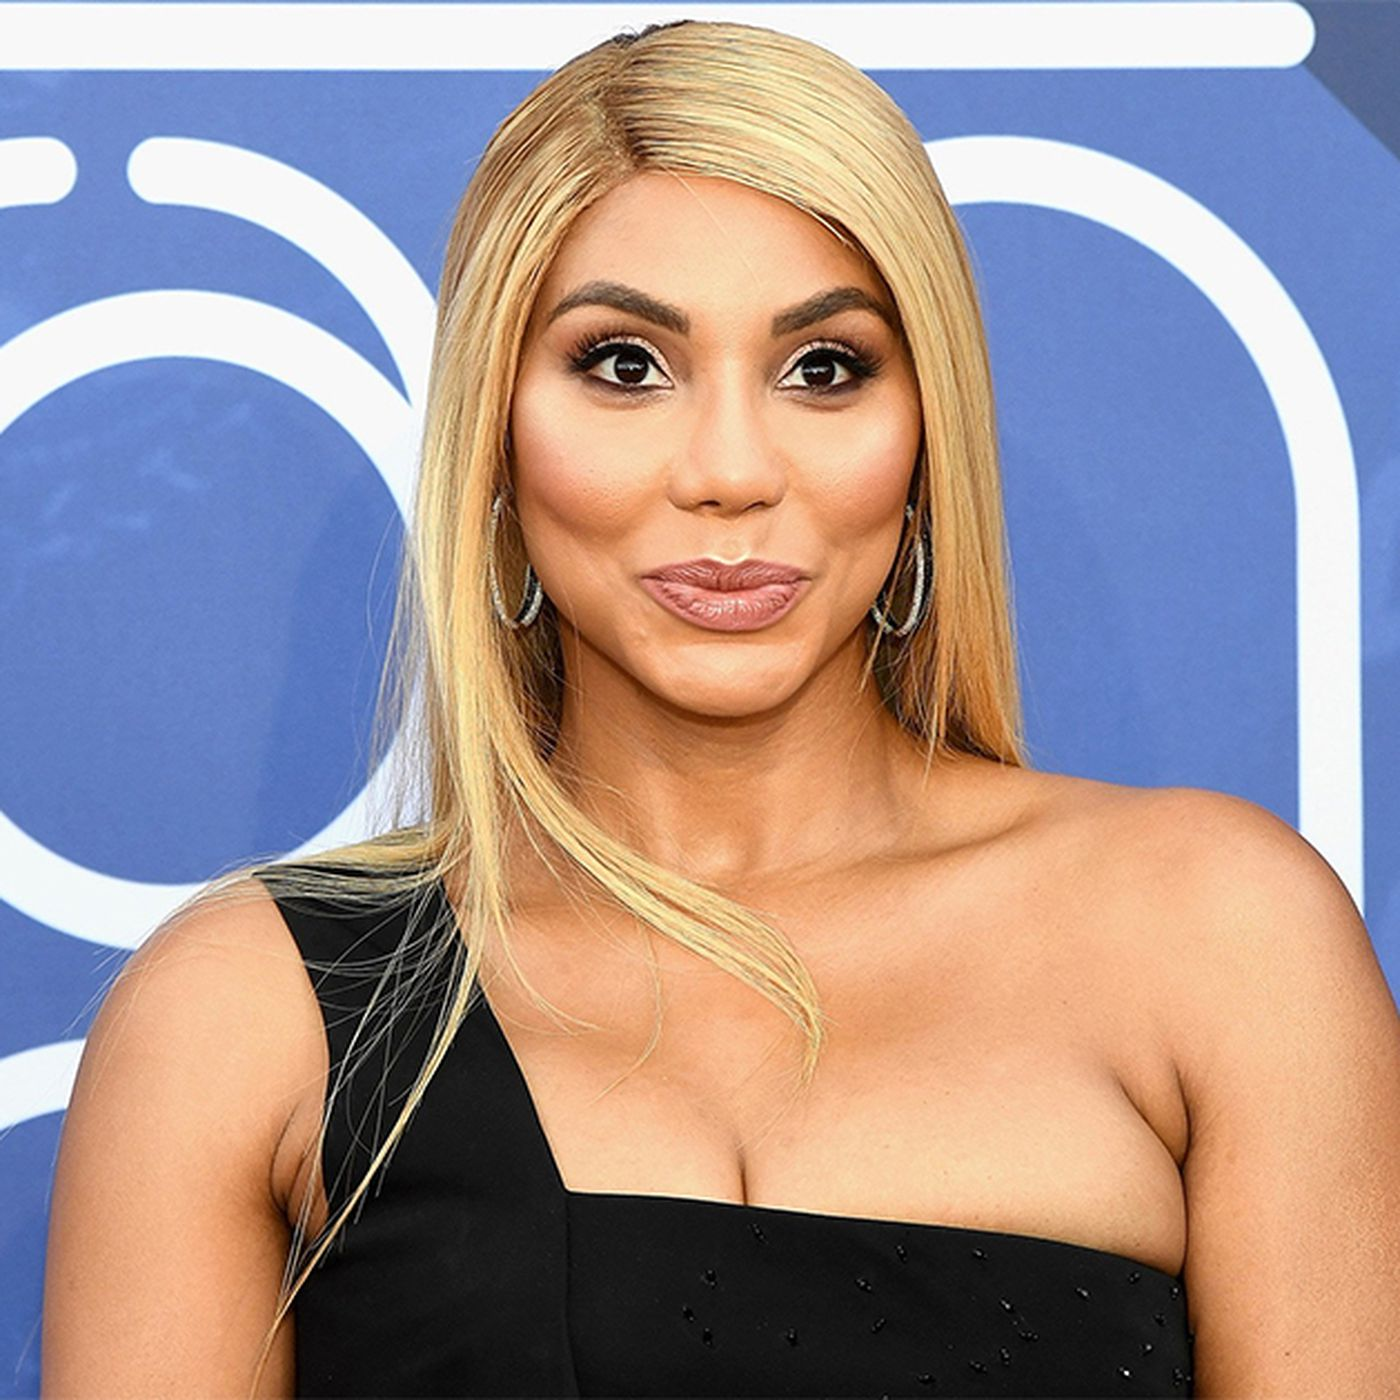 tamar-braxton-prepares-a-surprise-for-march-21-check-out-what-it-is-here